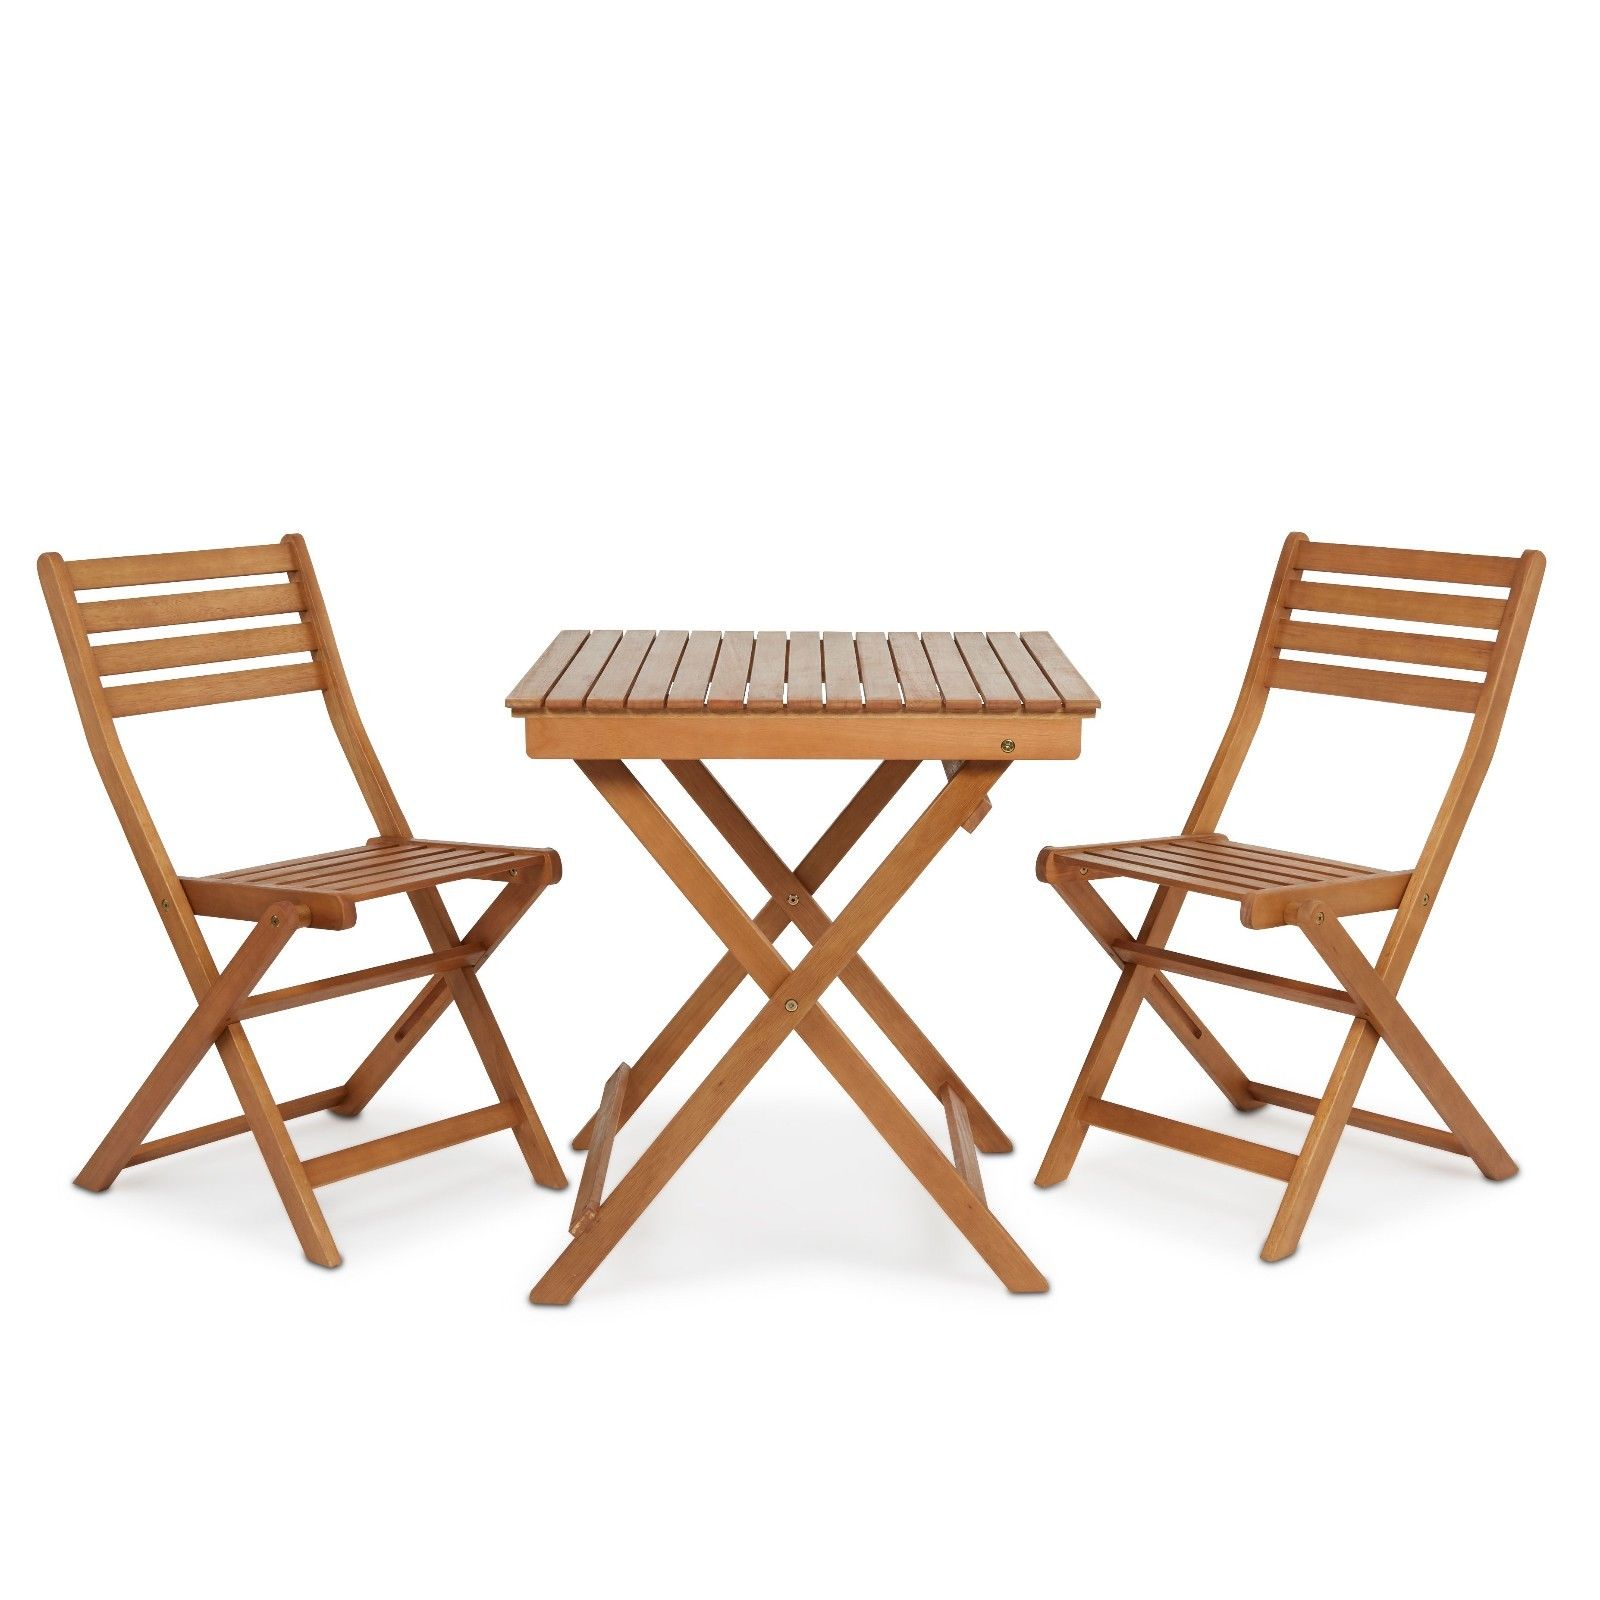 Garden Desk and Two Chairs Outdoor Folding Furnishings Wooden Bistro Set Patio